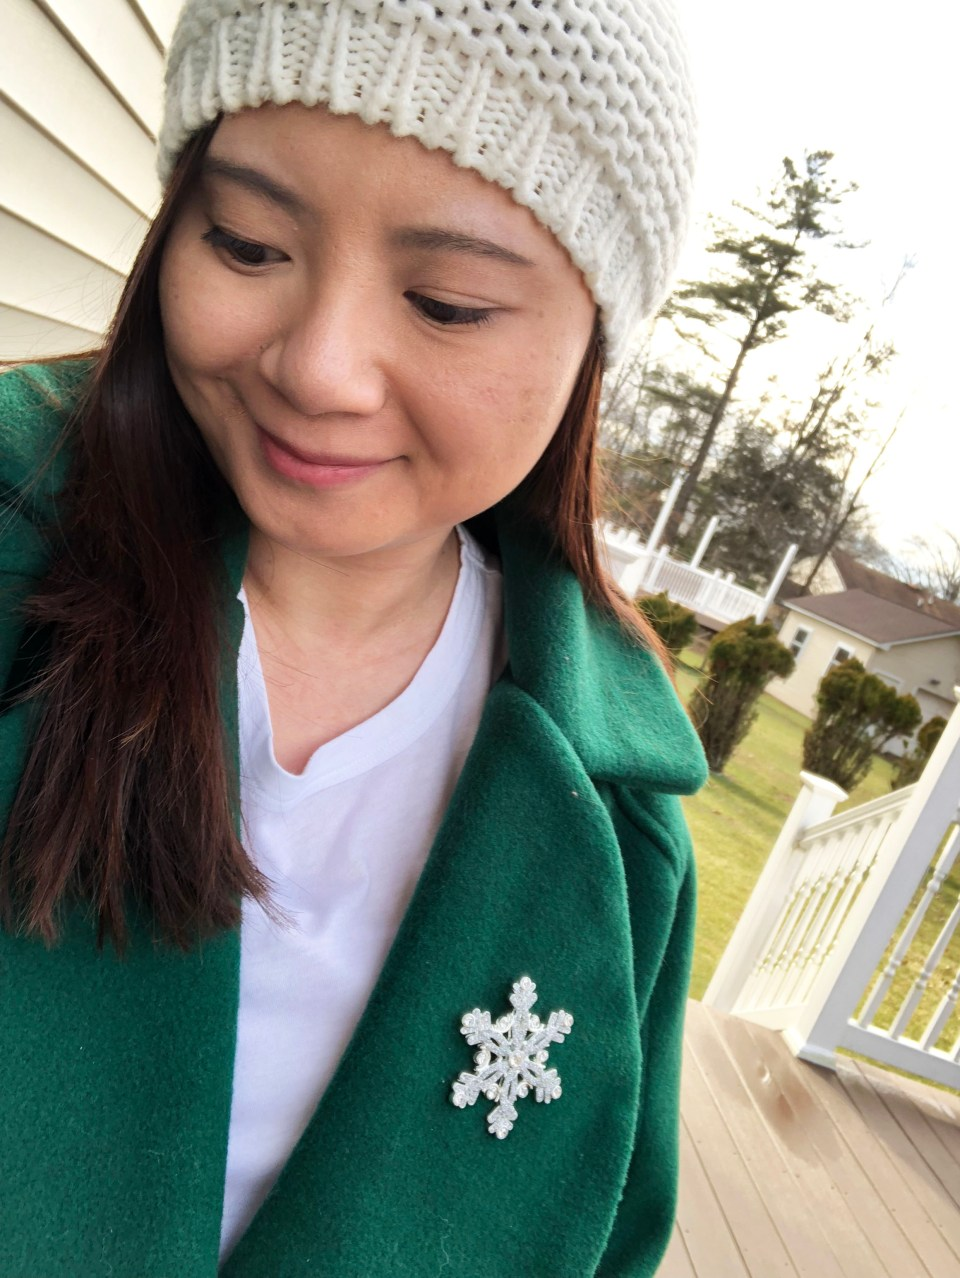 Green Lapel Coat + Snowflake Brooch 7